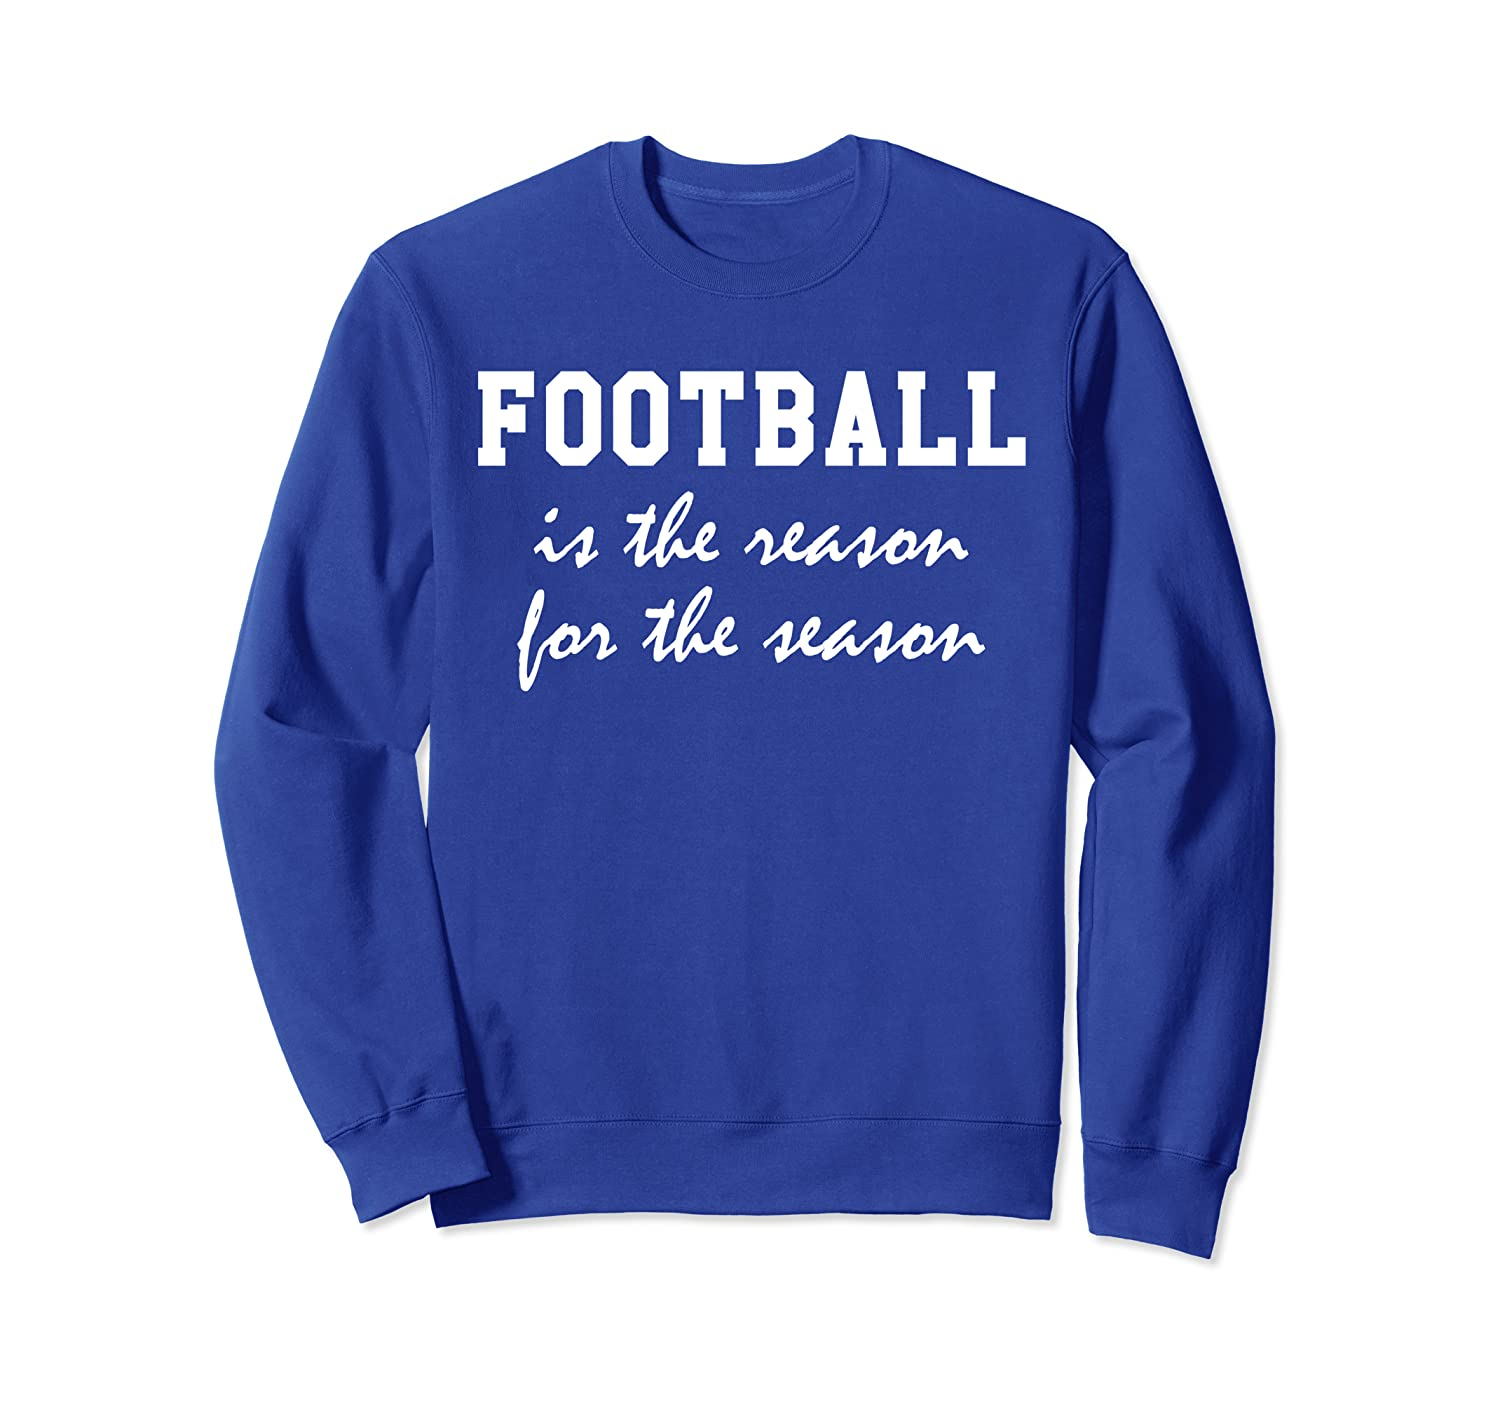 Football is the Reason for the Season Shirt,Its Gameday Yall Sweatshirt-TH